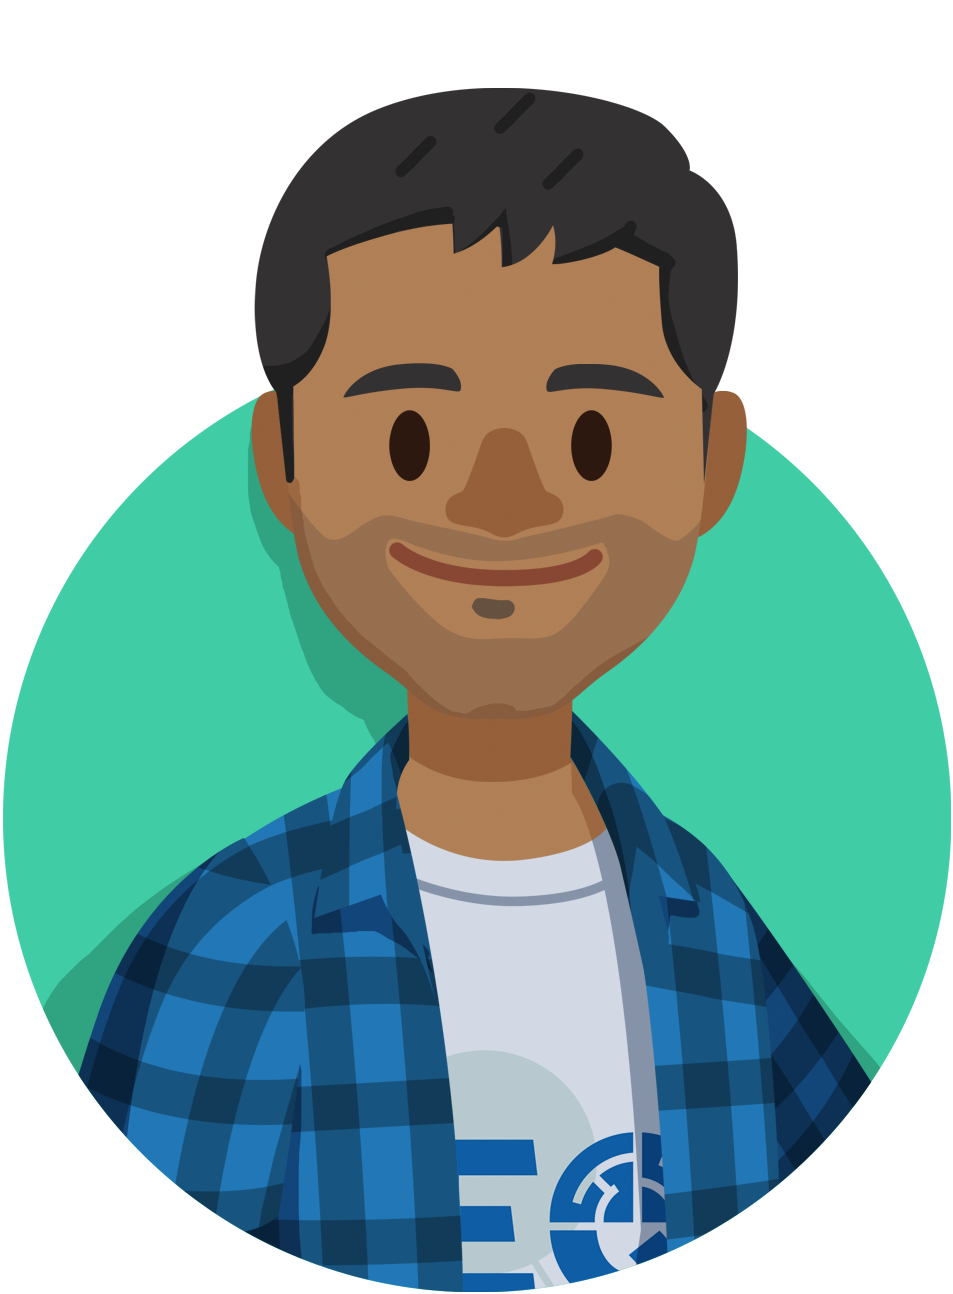 Aqvin Saldanha - Intermediate Unity DeveloperSoftware developer with professional experience in casual and e-learning mobile games development. Aqvin is also a former indie game developer having several published games in multiple app stores.